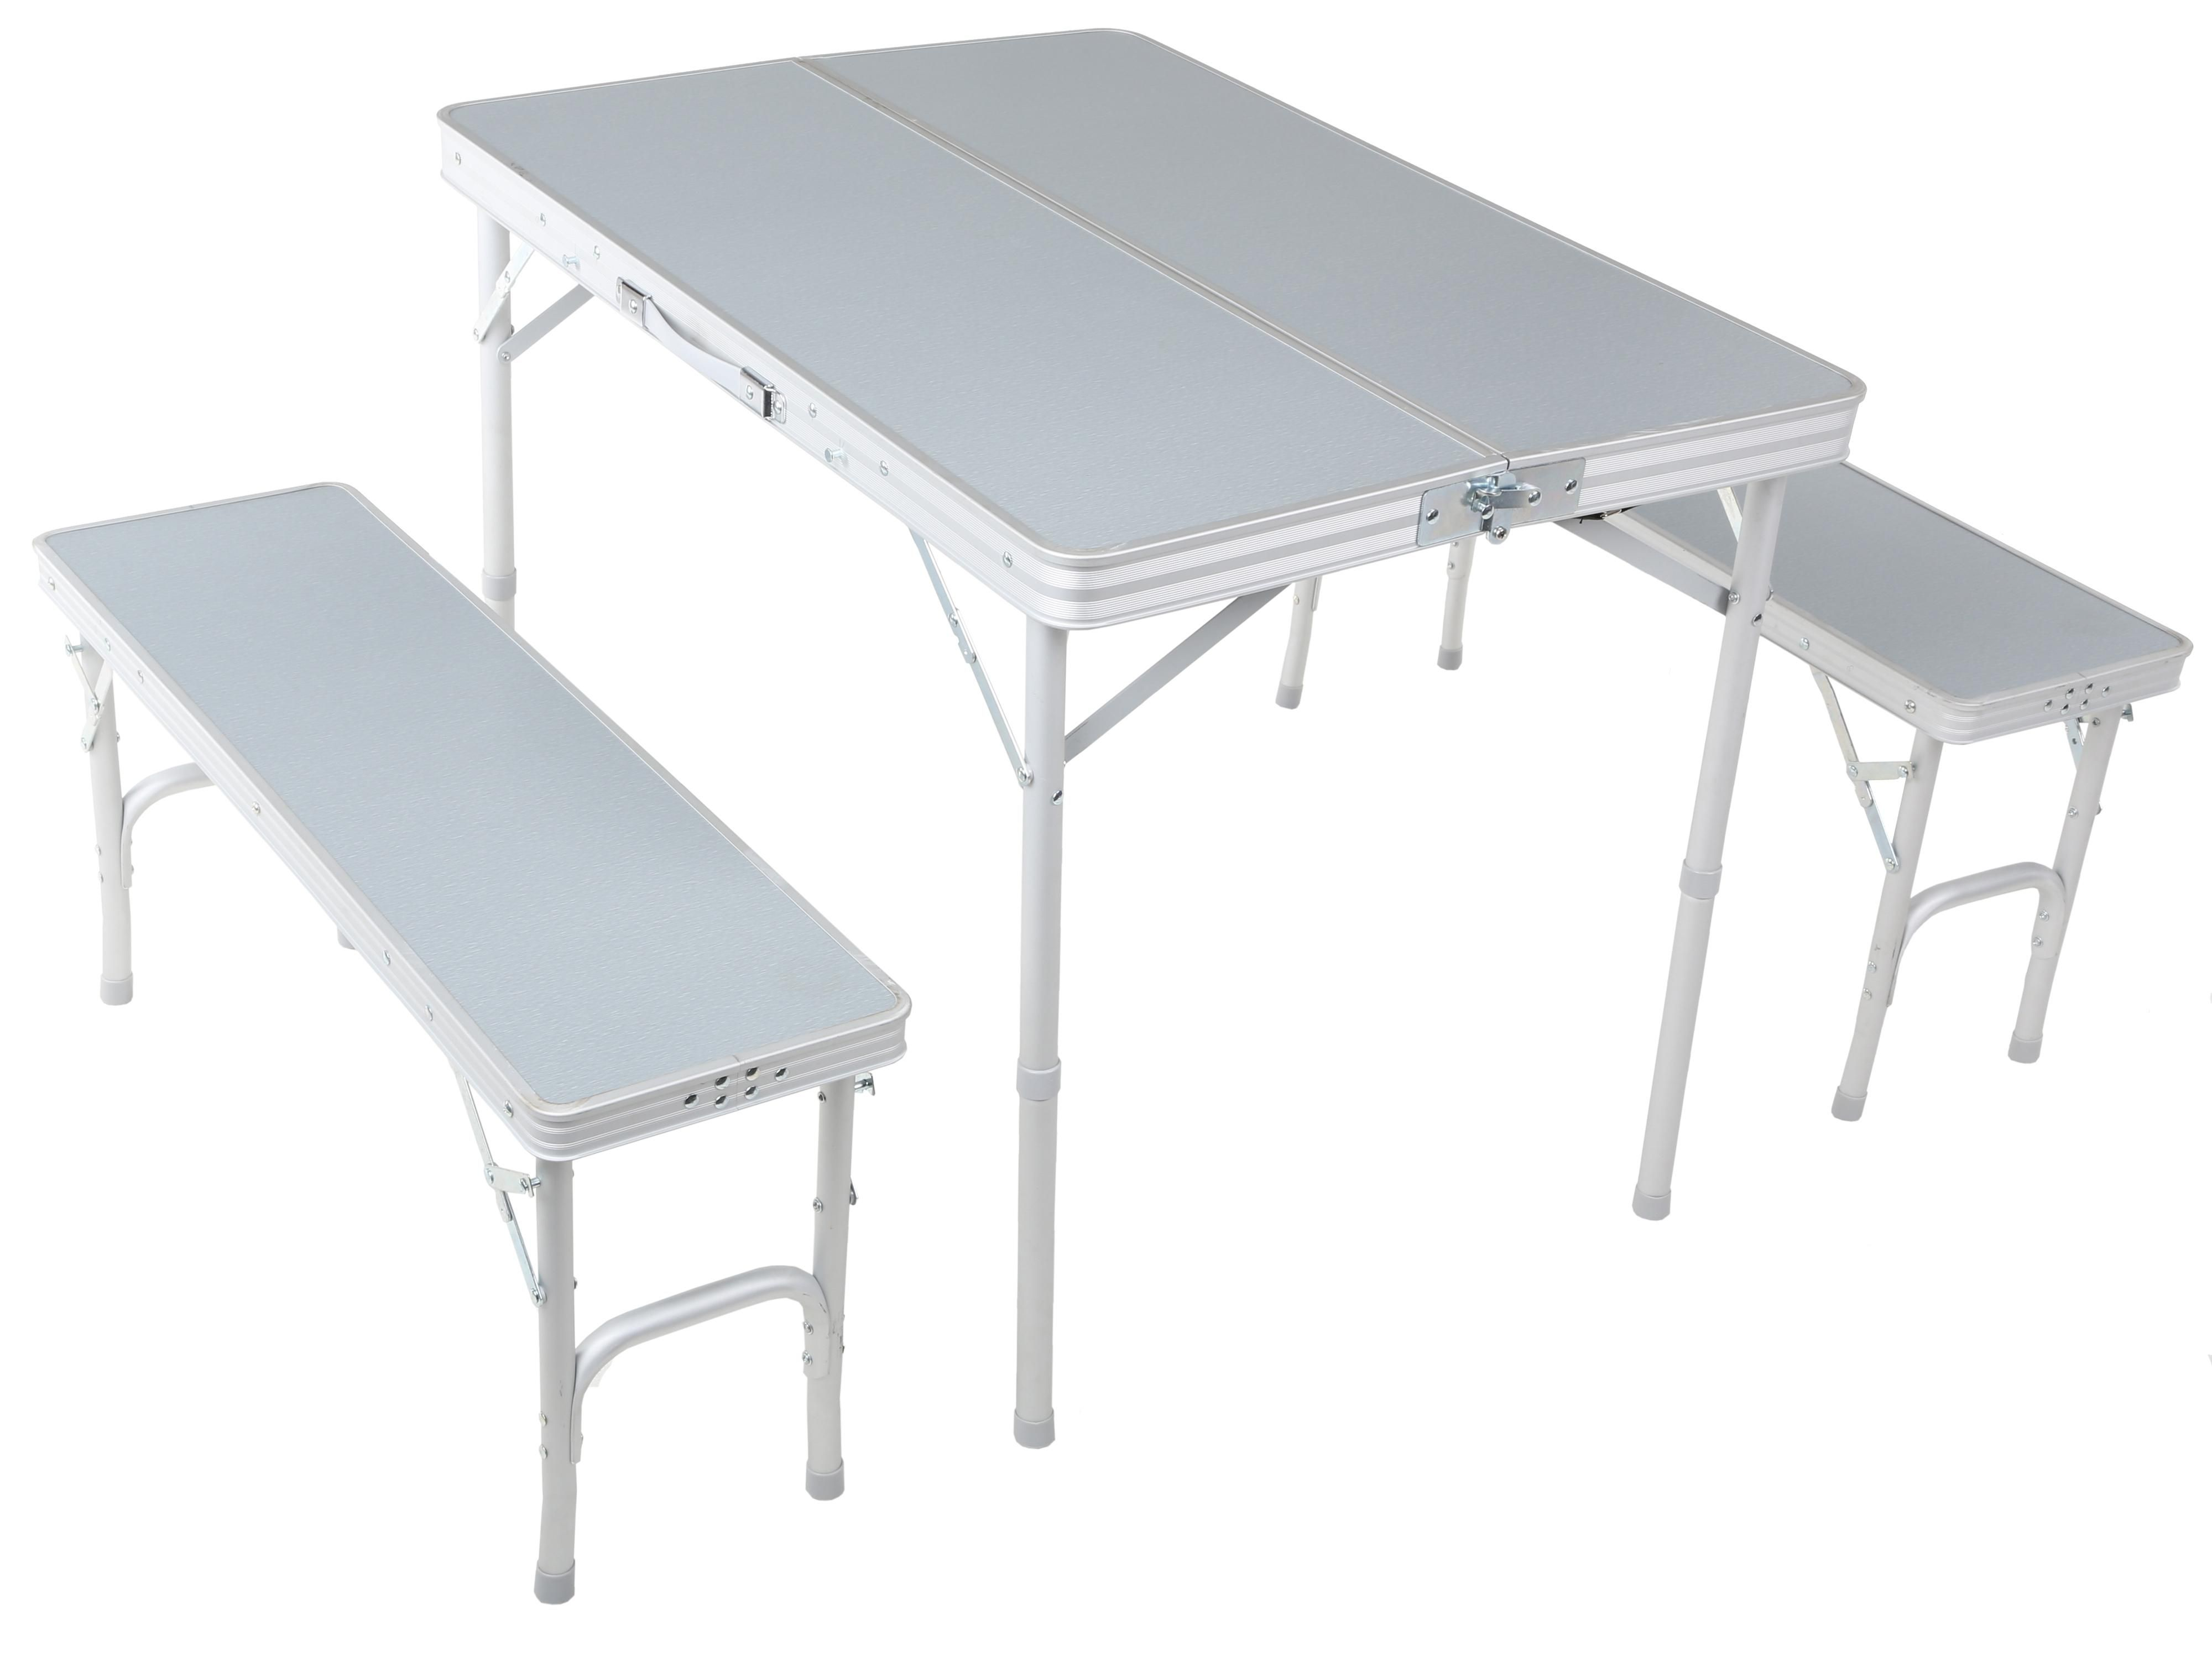 Good Urban Escape Folding Table And Bench Set Folds Down Into A Single Carry  Case.